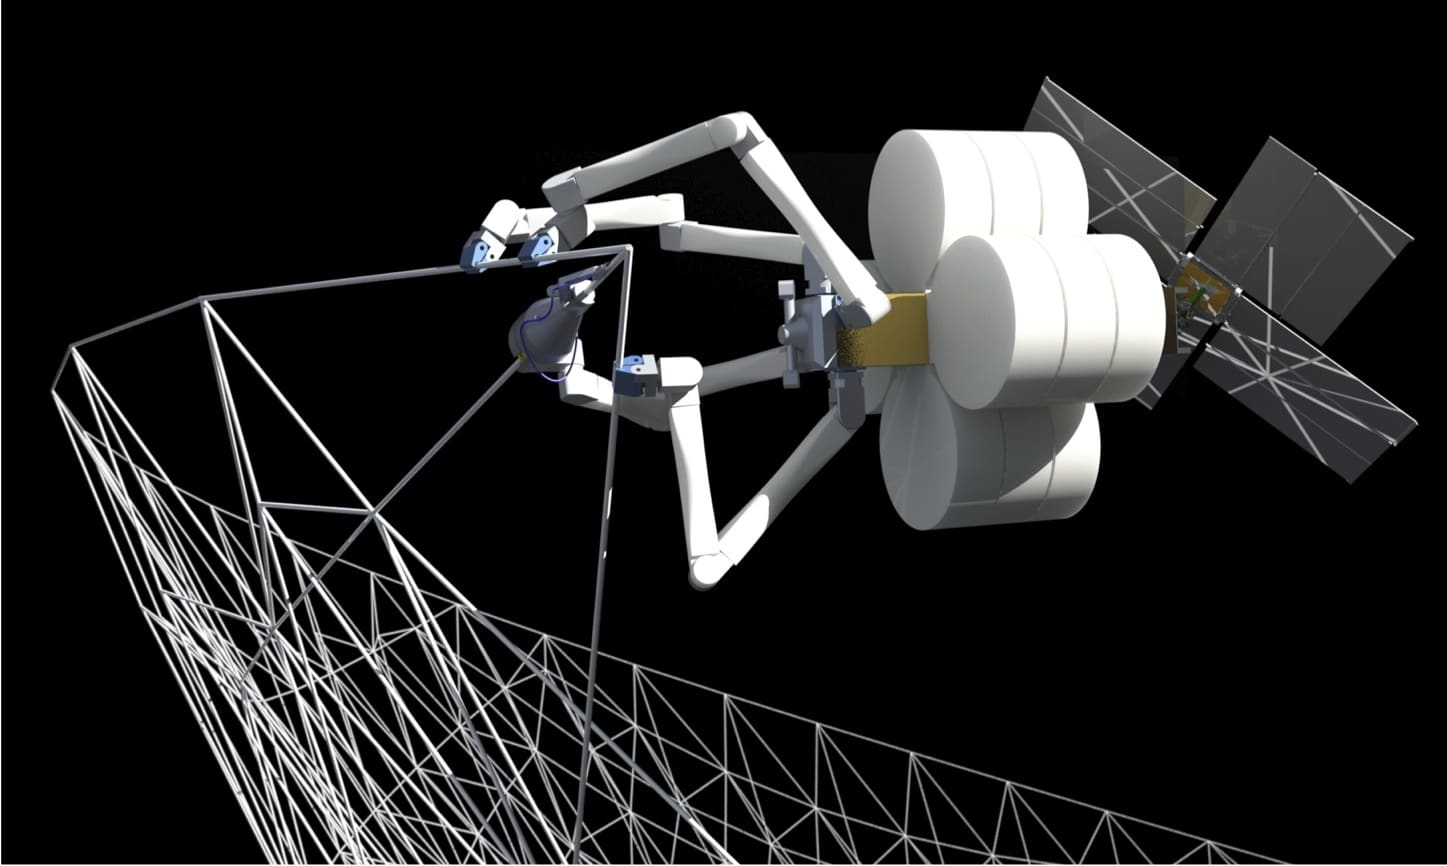 Nasa To Use 3d Printer To Print Objects In Space